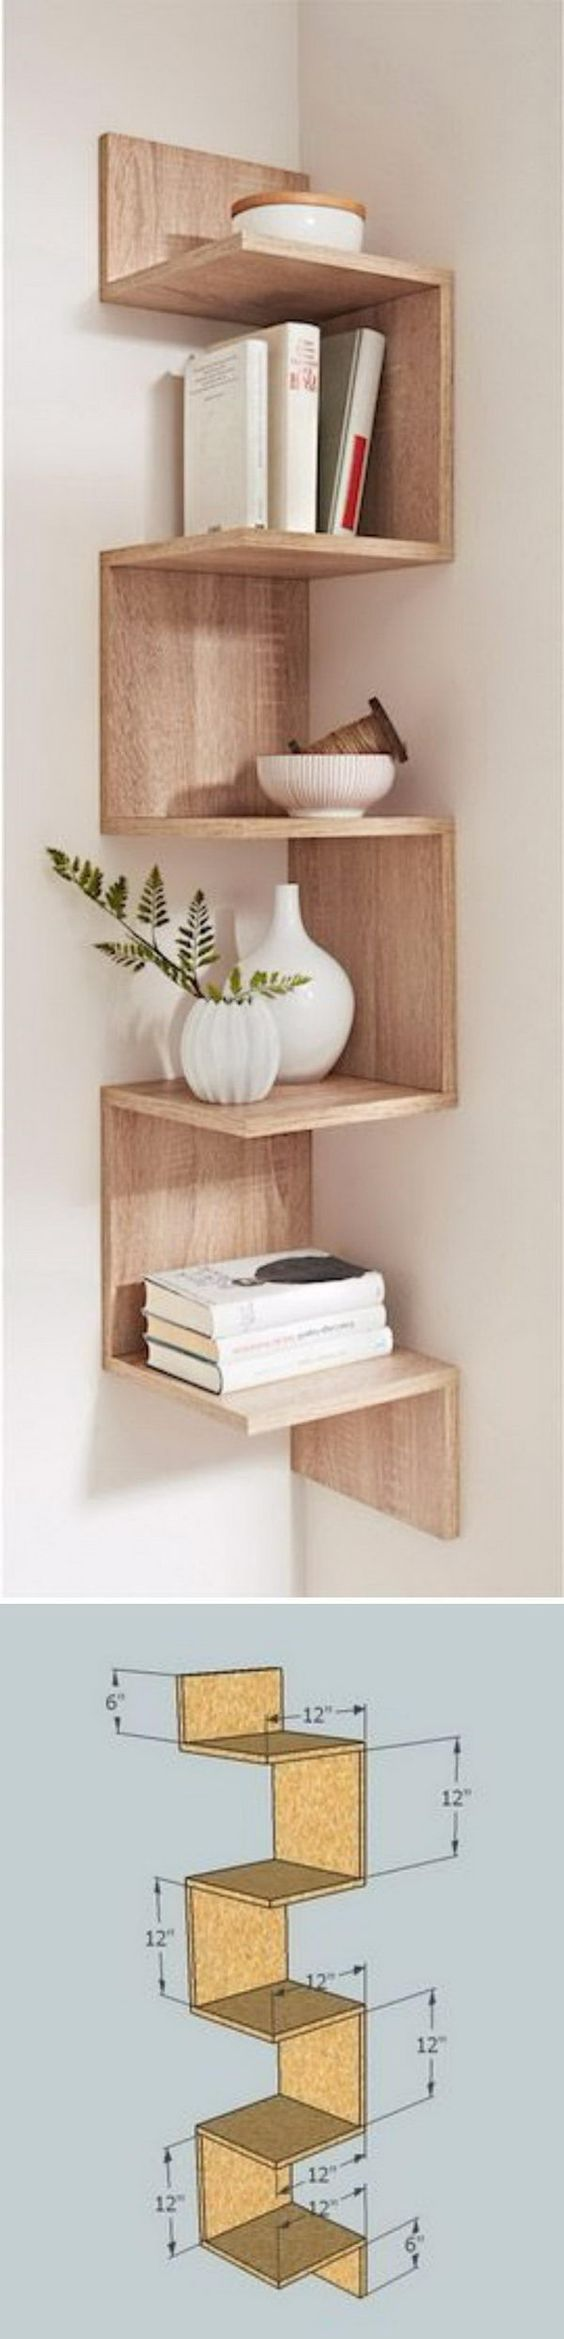 Cool Shelving Fascinating Best 25 Shelf Ideas Ideas On Pinterest  Shelves Box Shelves And . Decorating Design